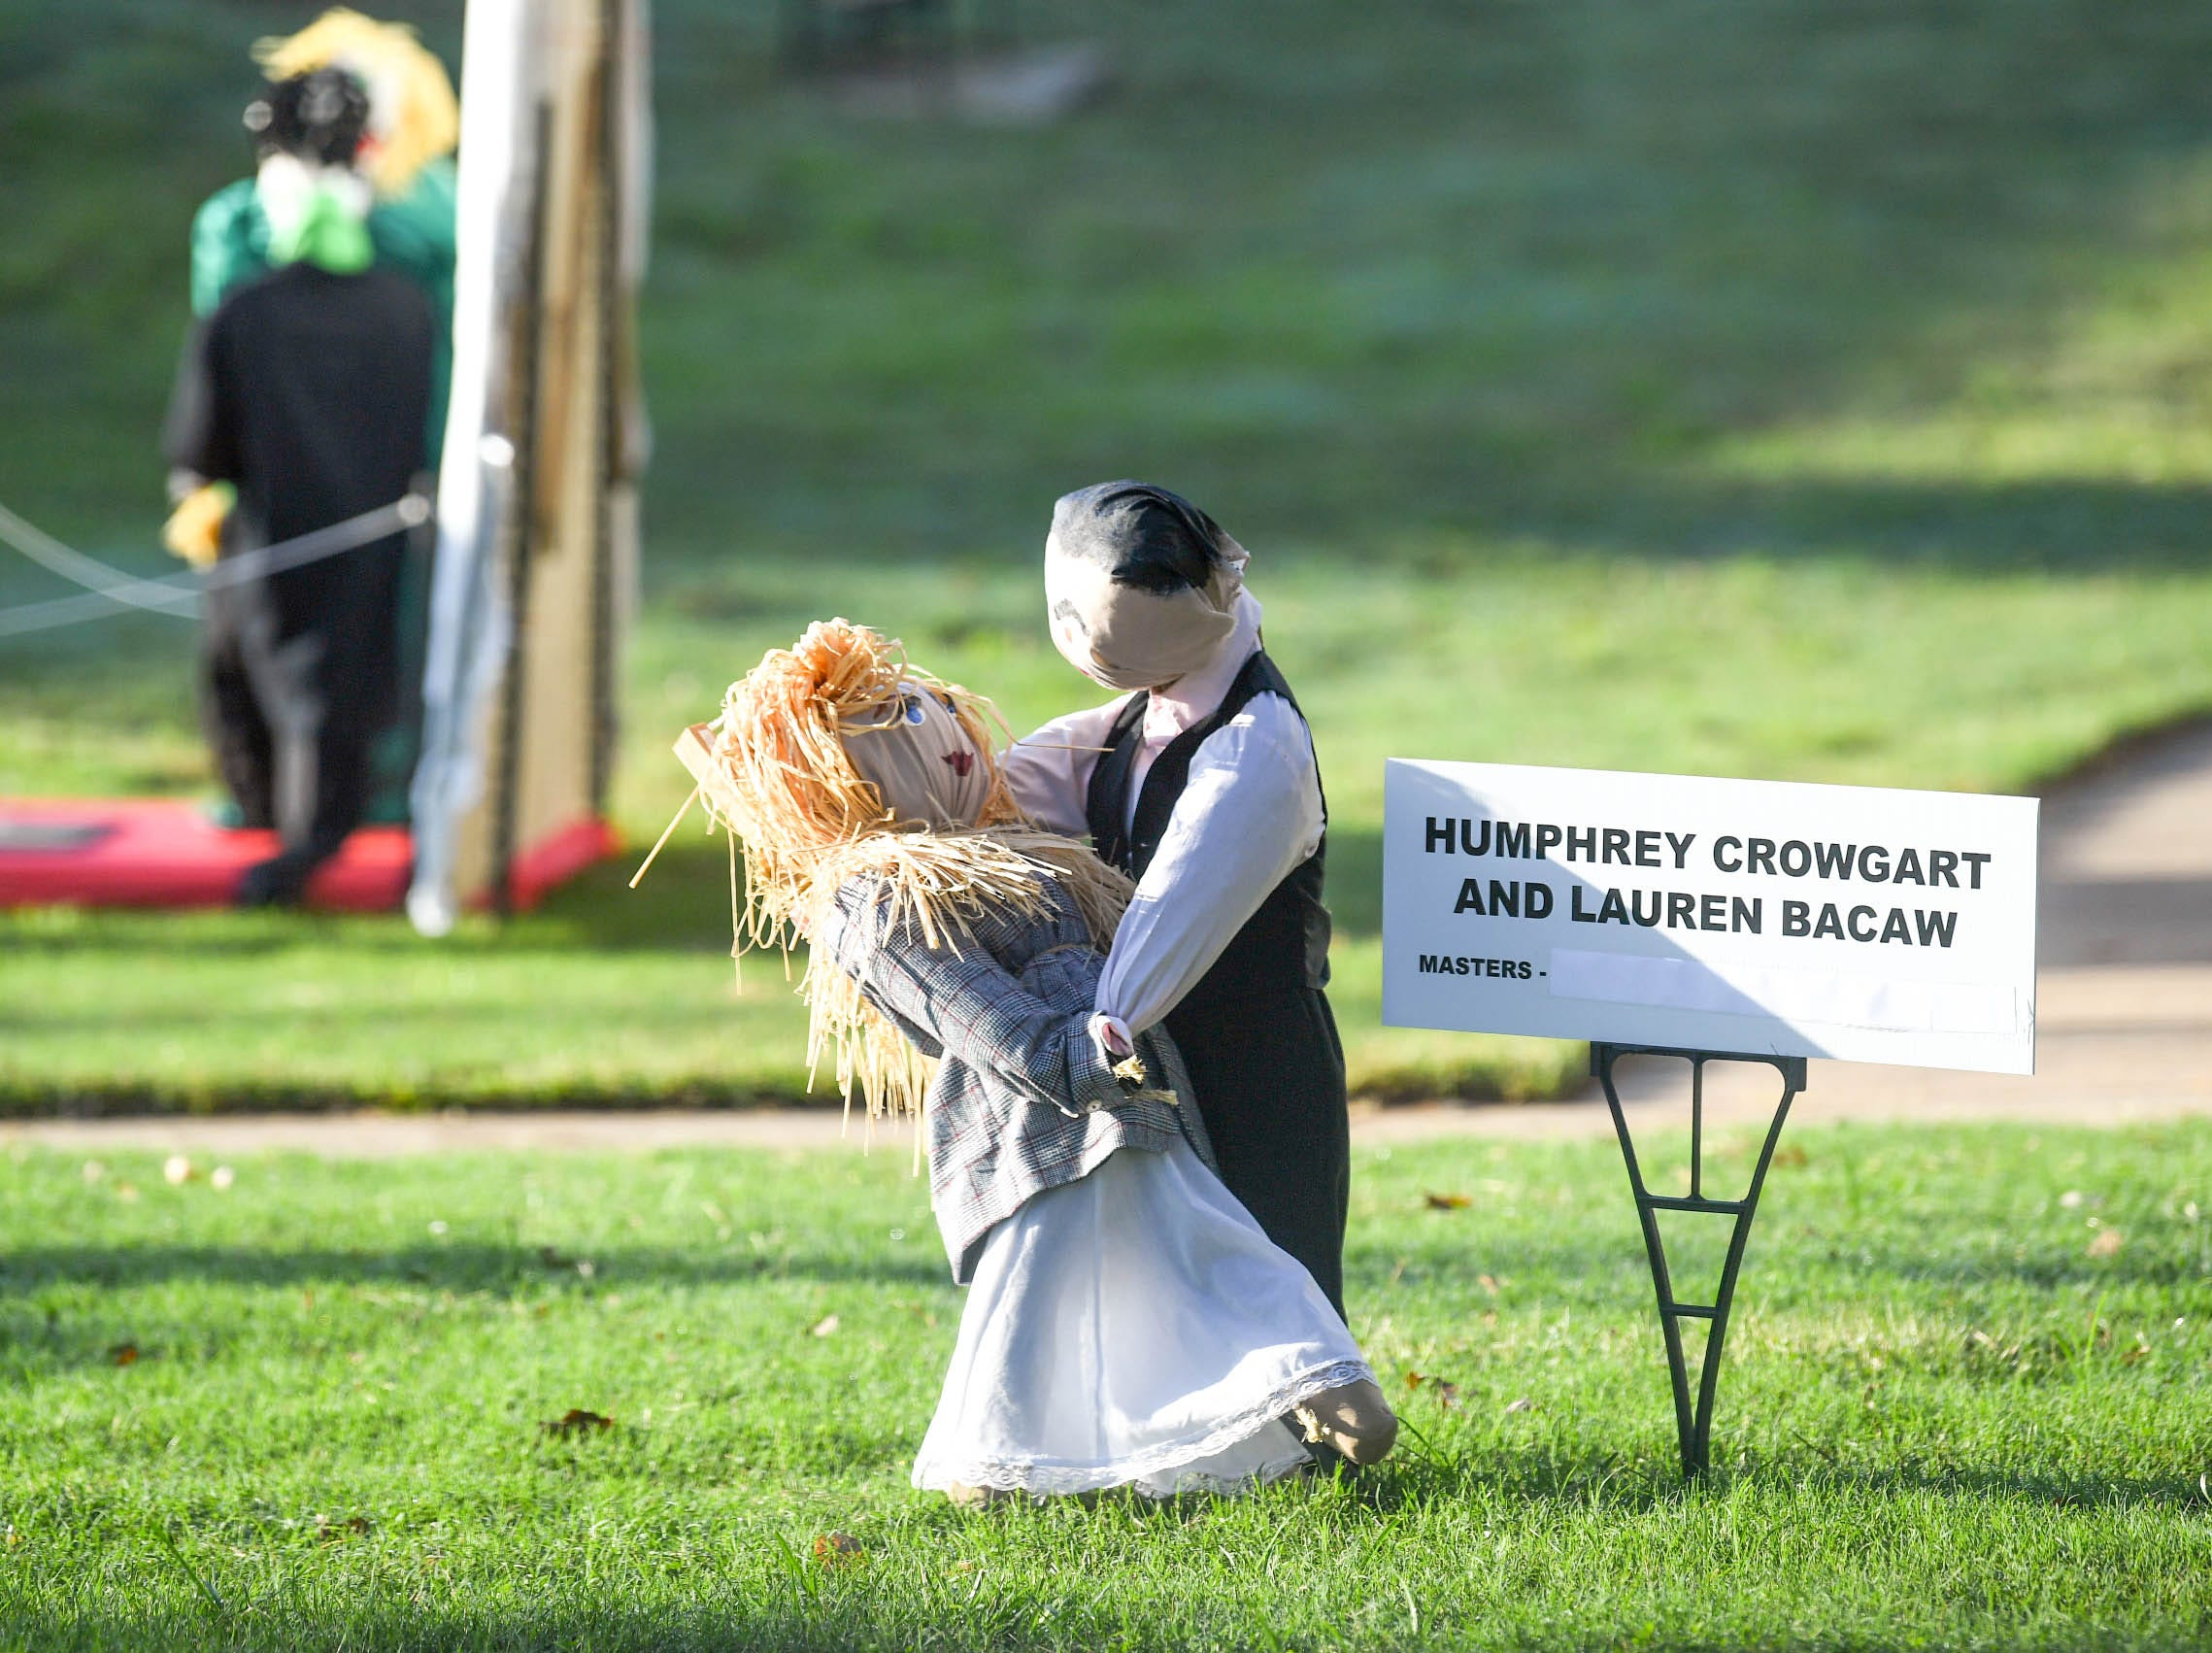 """""""Humphrey Crowgart and Lauren Bacaw"""" is one of many displays in The Pendleton Scarecrow Contest leading up to the 20th Fall Harvest Festival in the village green Saturday, October 6 from 10 a.m. to 5 p.m. The annual contest in Pendleton for businesses, individuals, groups, organizations and churches who create fun not scary Scarecrows. People driving around the downtown square can see different theme scarecrows."""